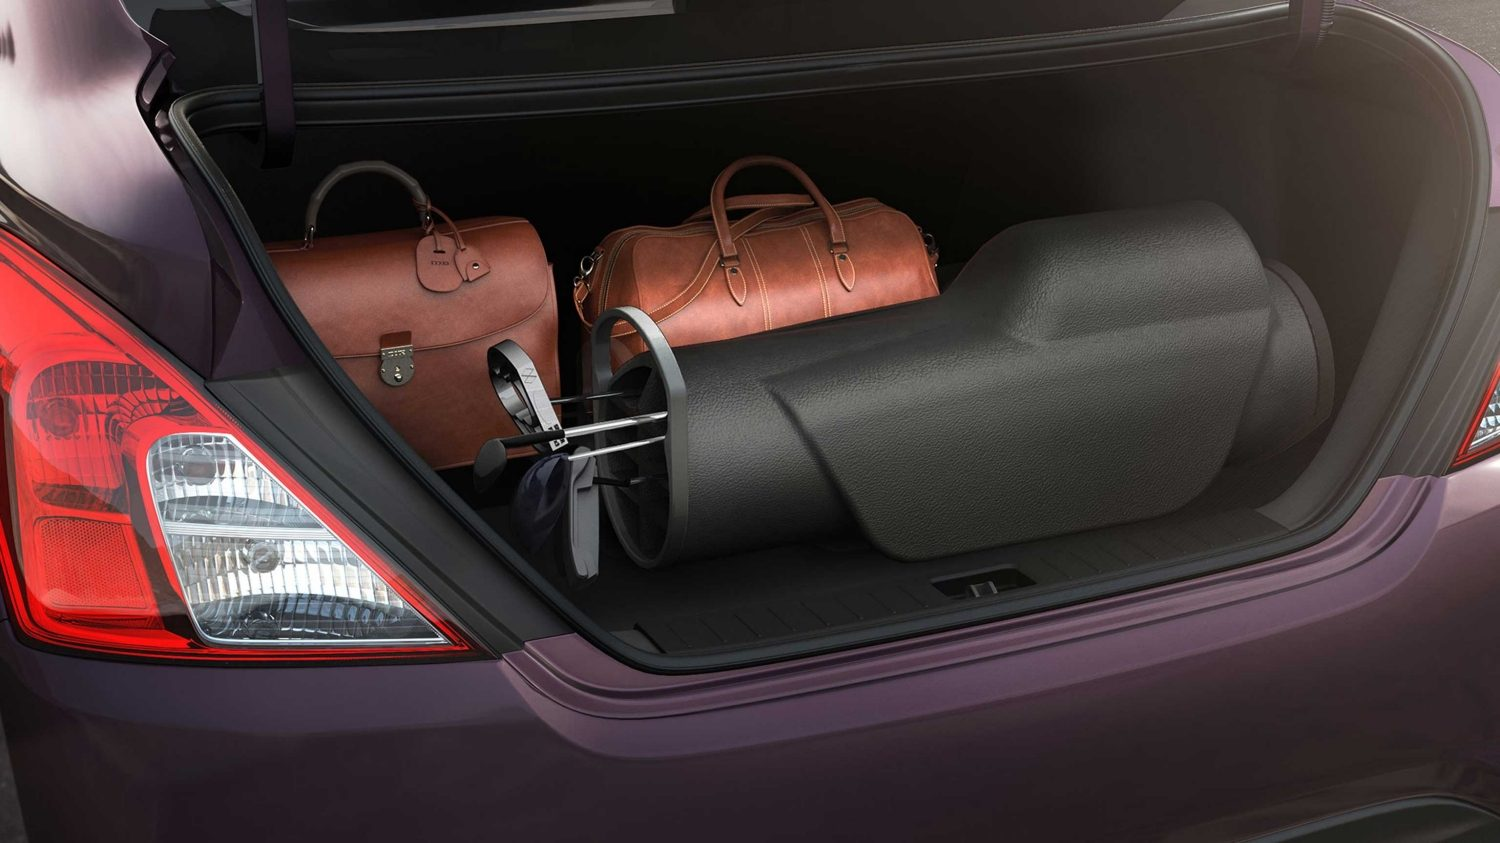 Nissan Sunny boot space